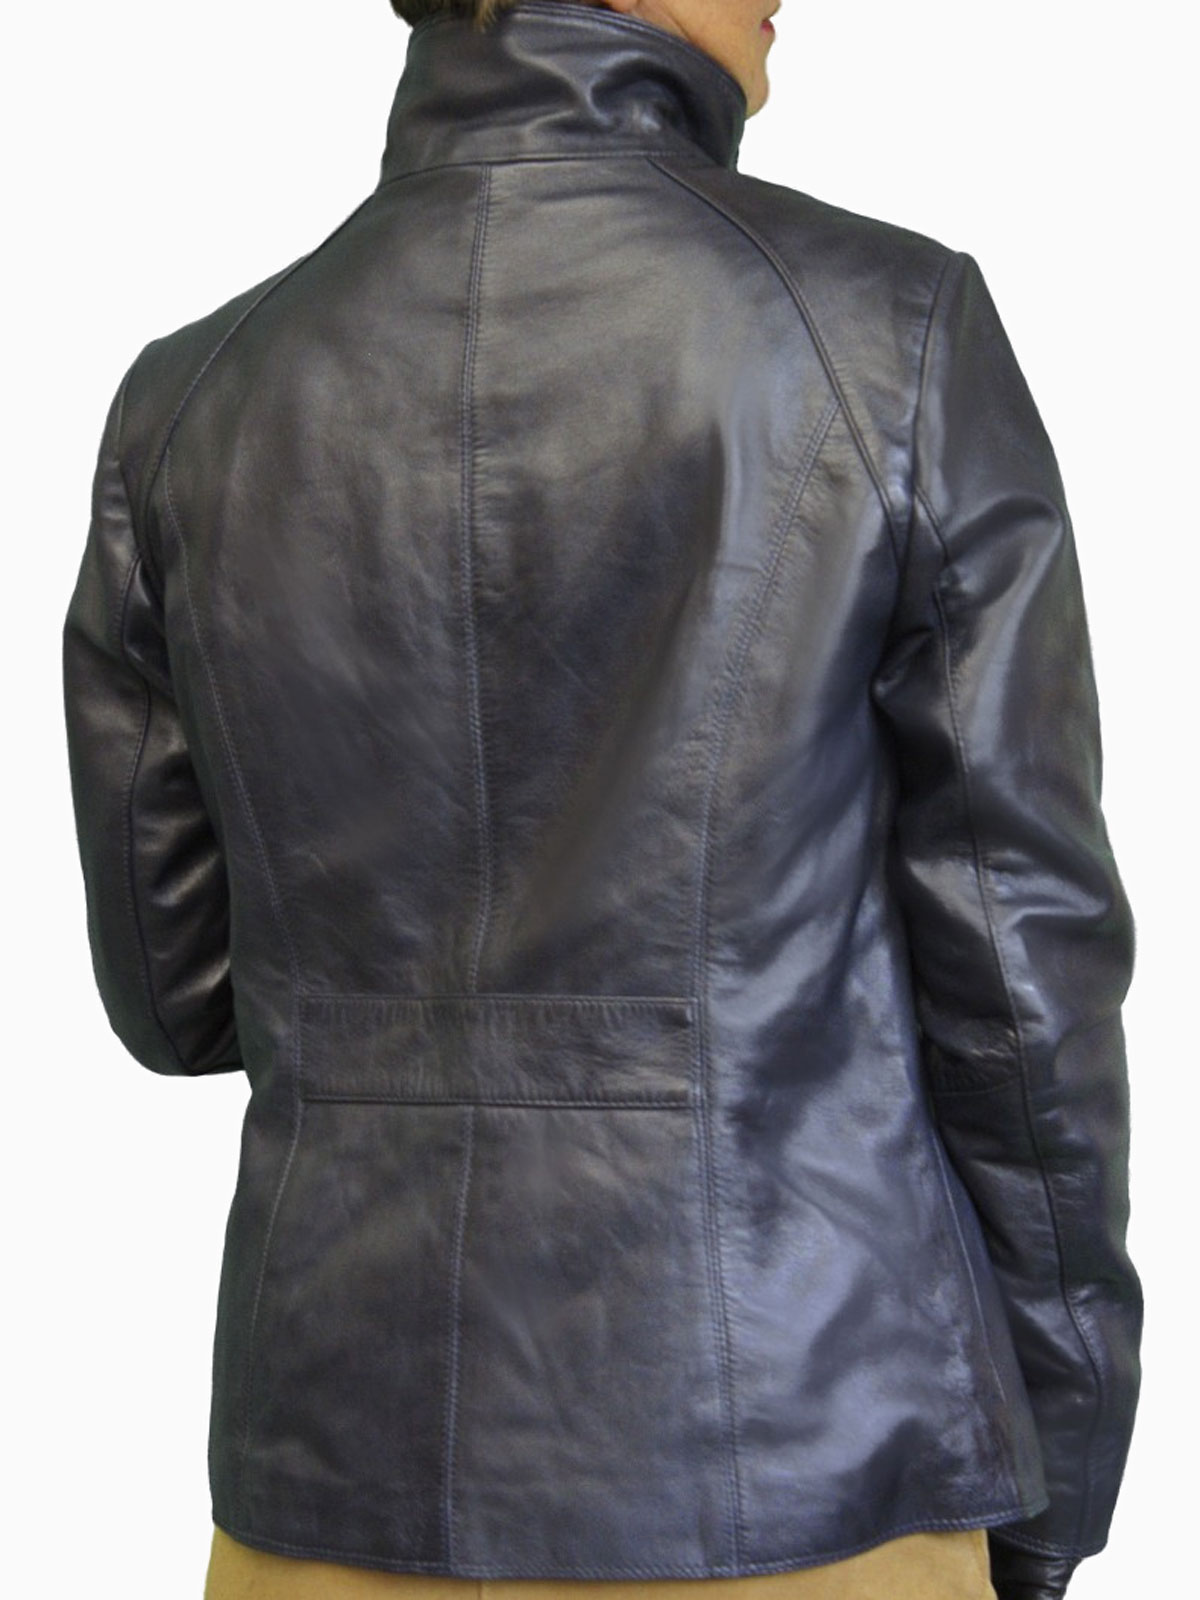 Womens Luxury Leather Jacket With High Collar Tout Ensemble